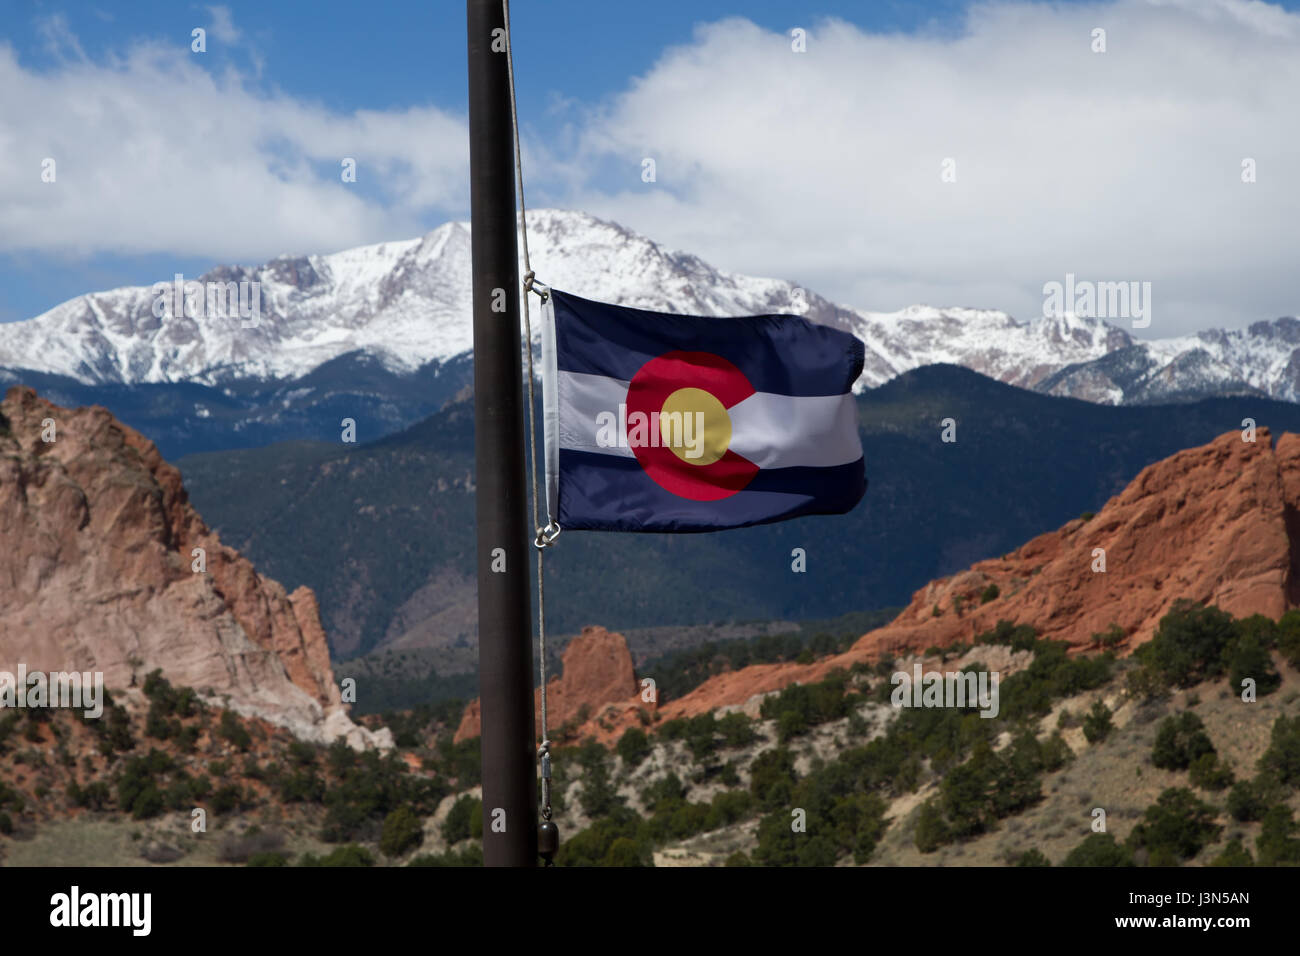 Colorado State Flag with Pikes Peak and Garden of the Gods in the background on a spring day - Stock Image